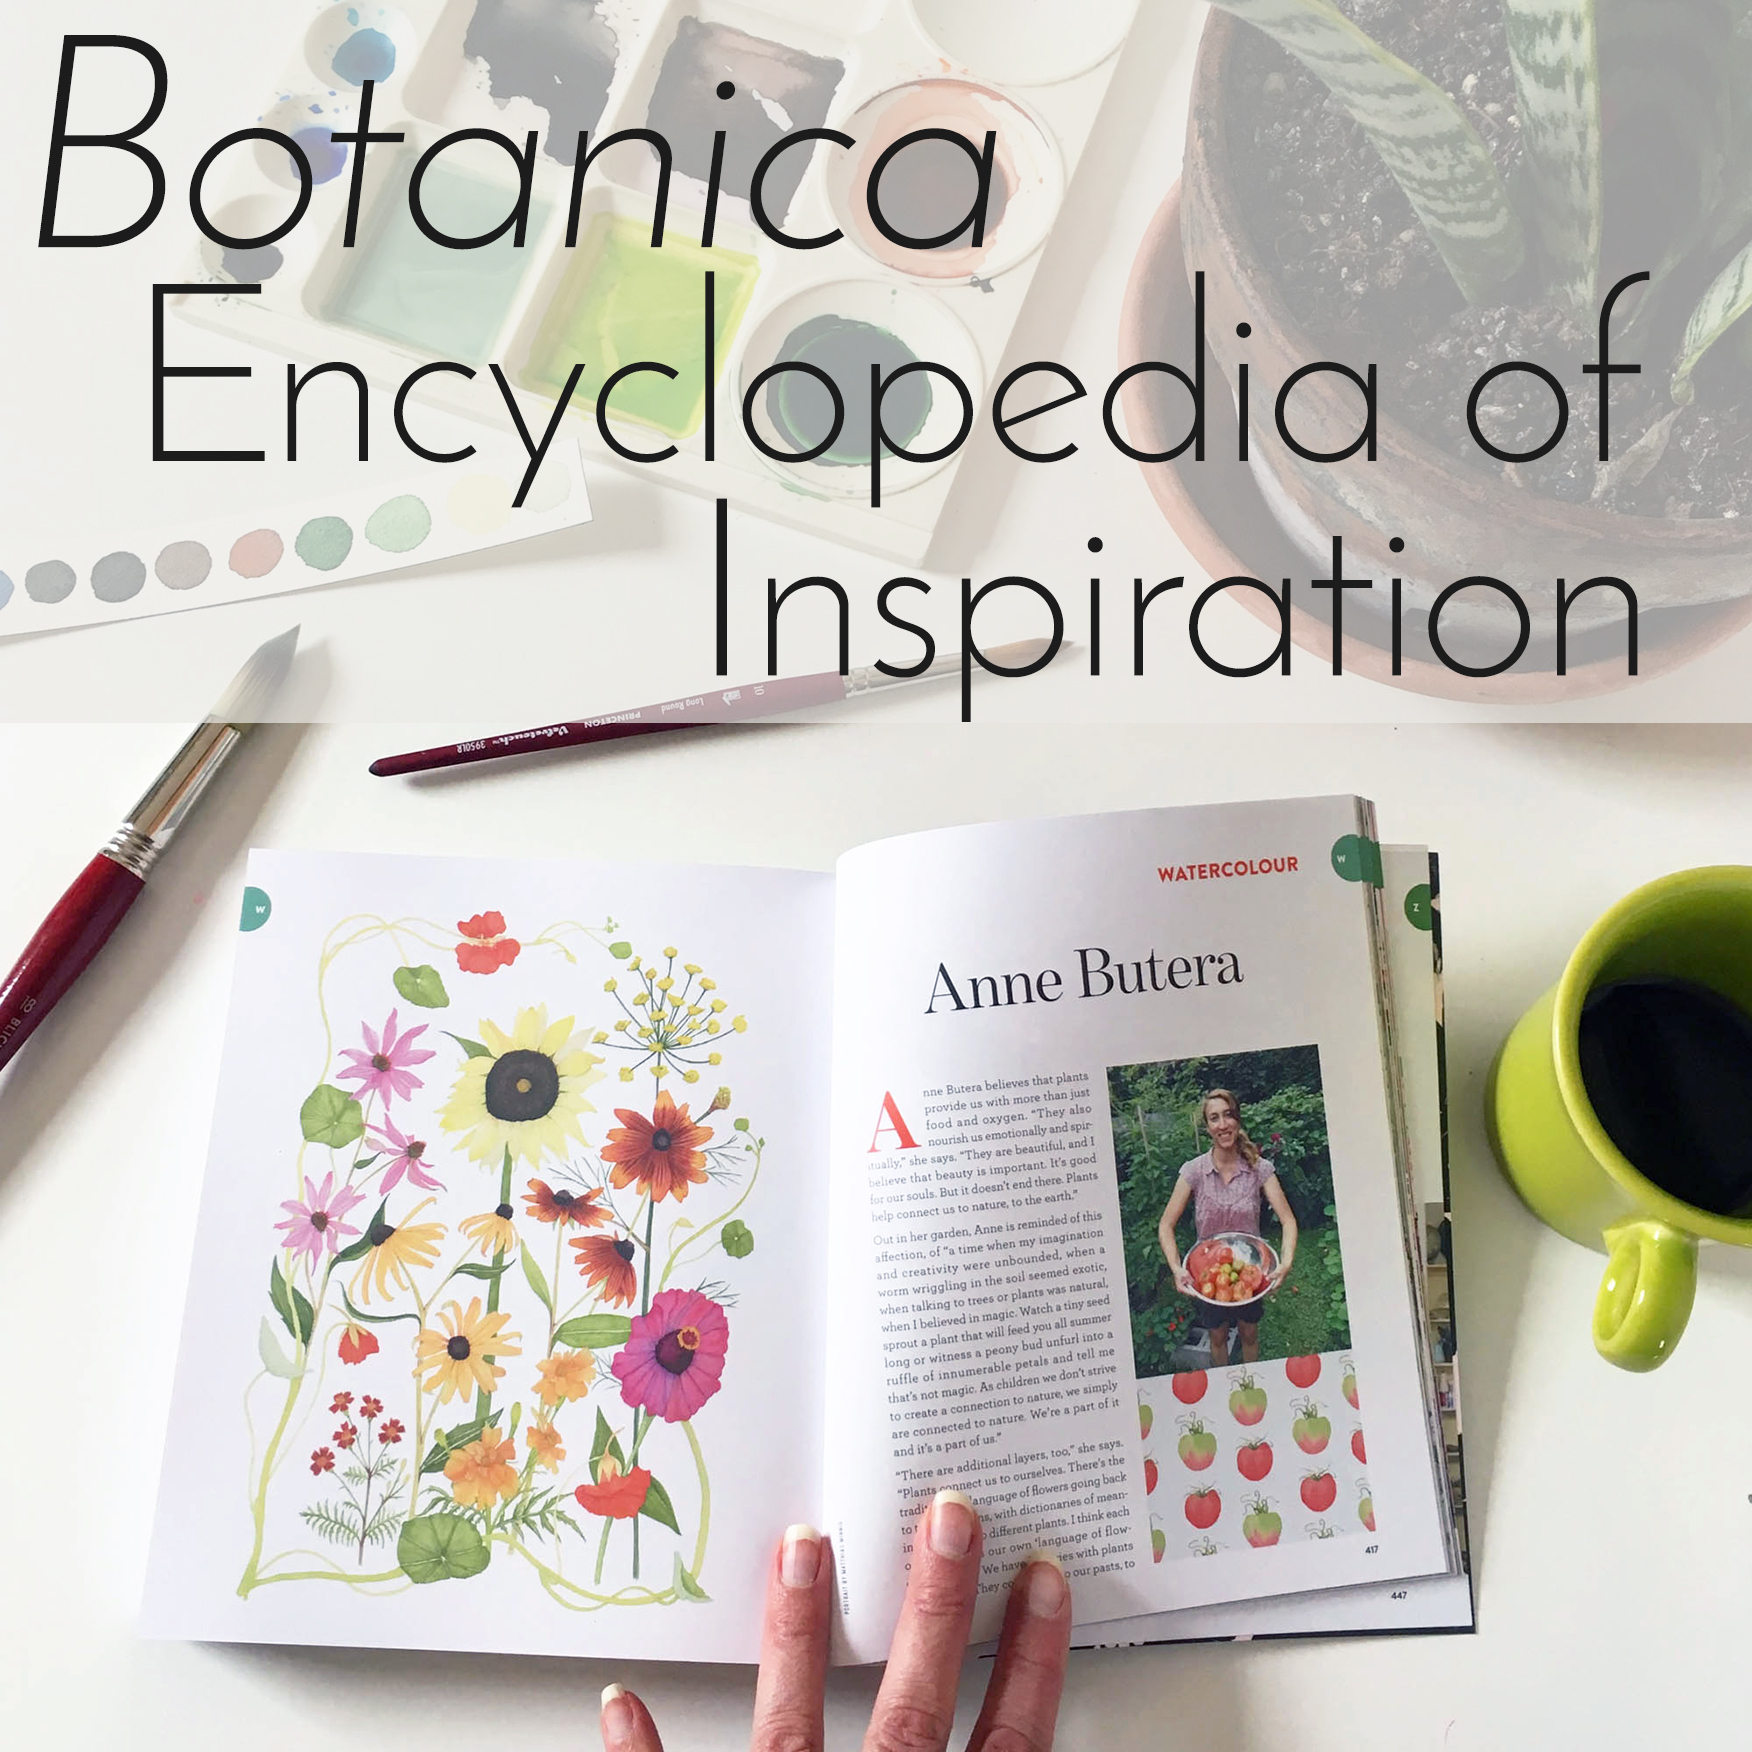 Artist Anne Butera was Profiled in the UPPERCASE Encyclopedia of Inspiration's Botanica Volume